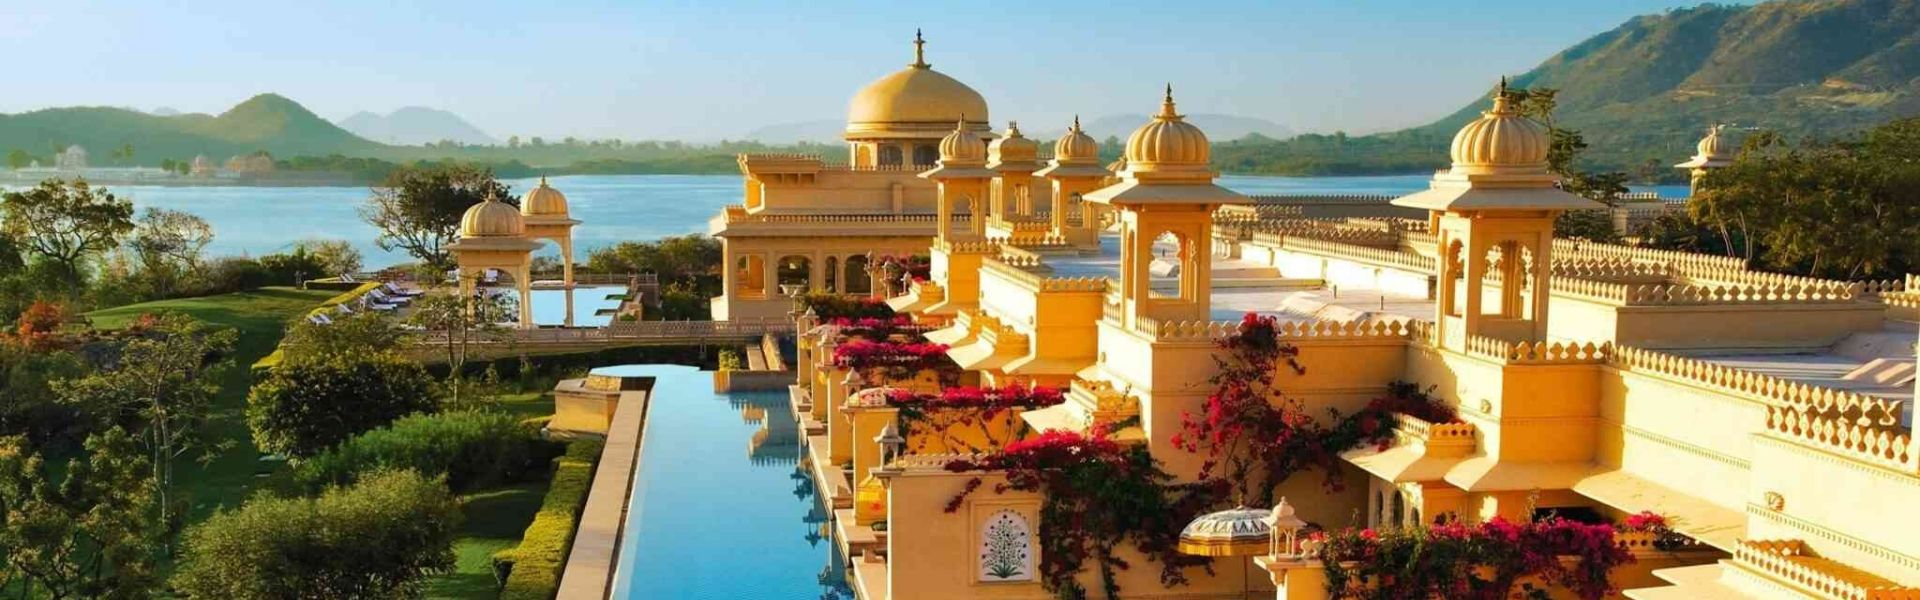 rajasthan tourism,india tour,travel india